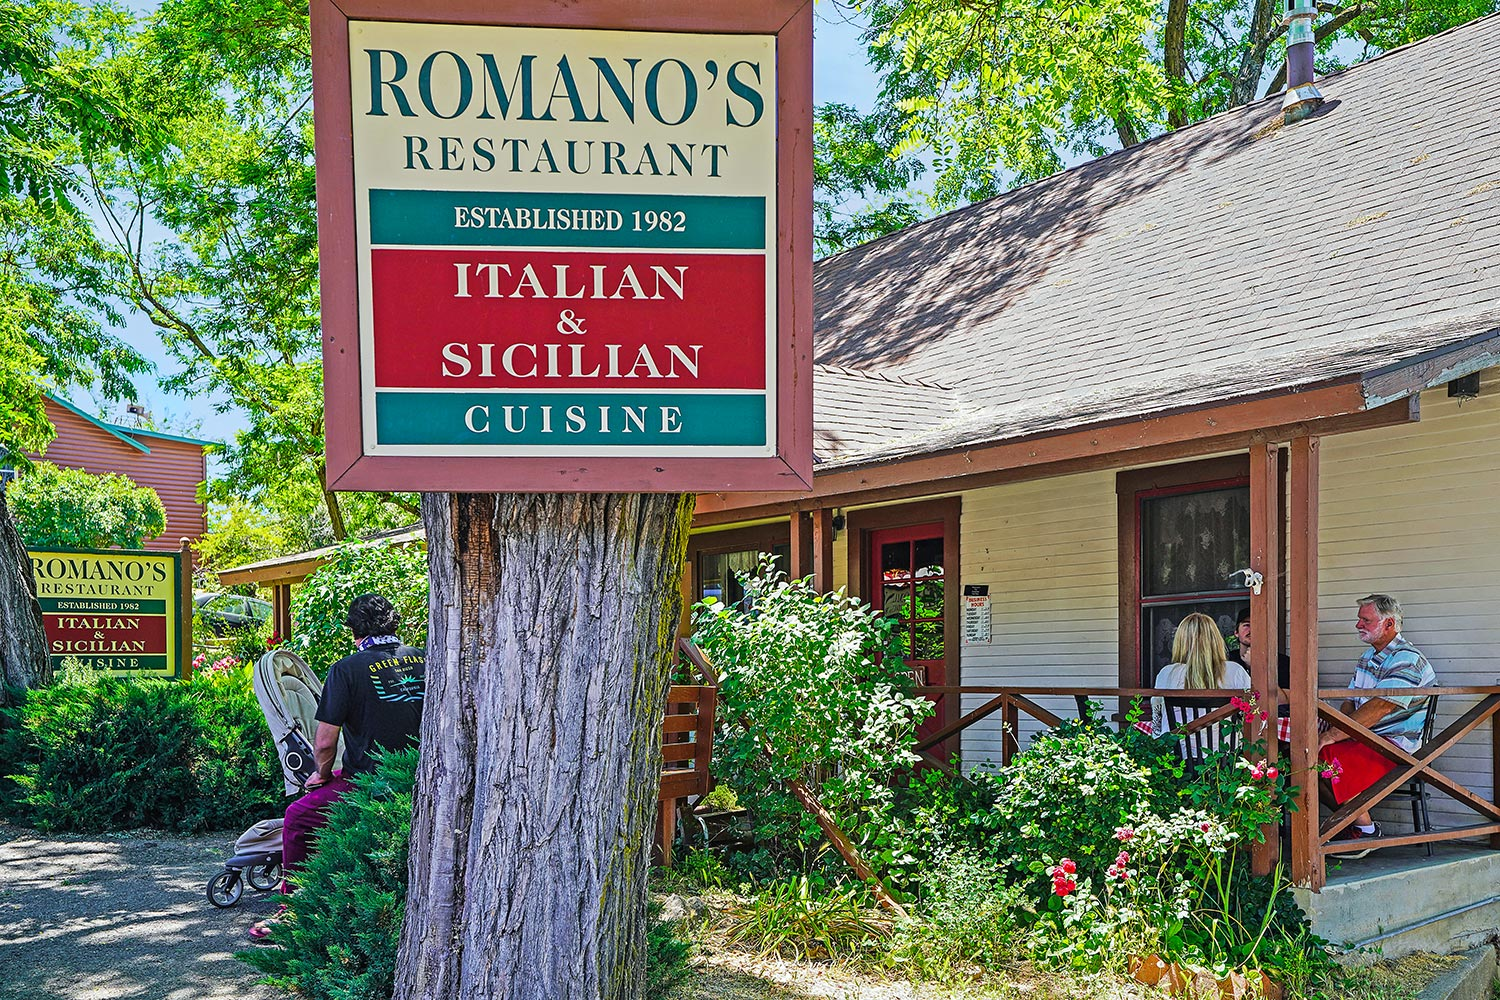 Romano's Restaurant in Julian